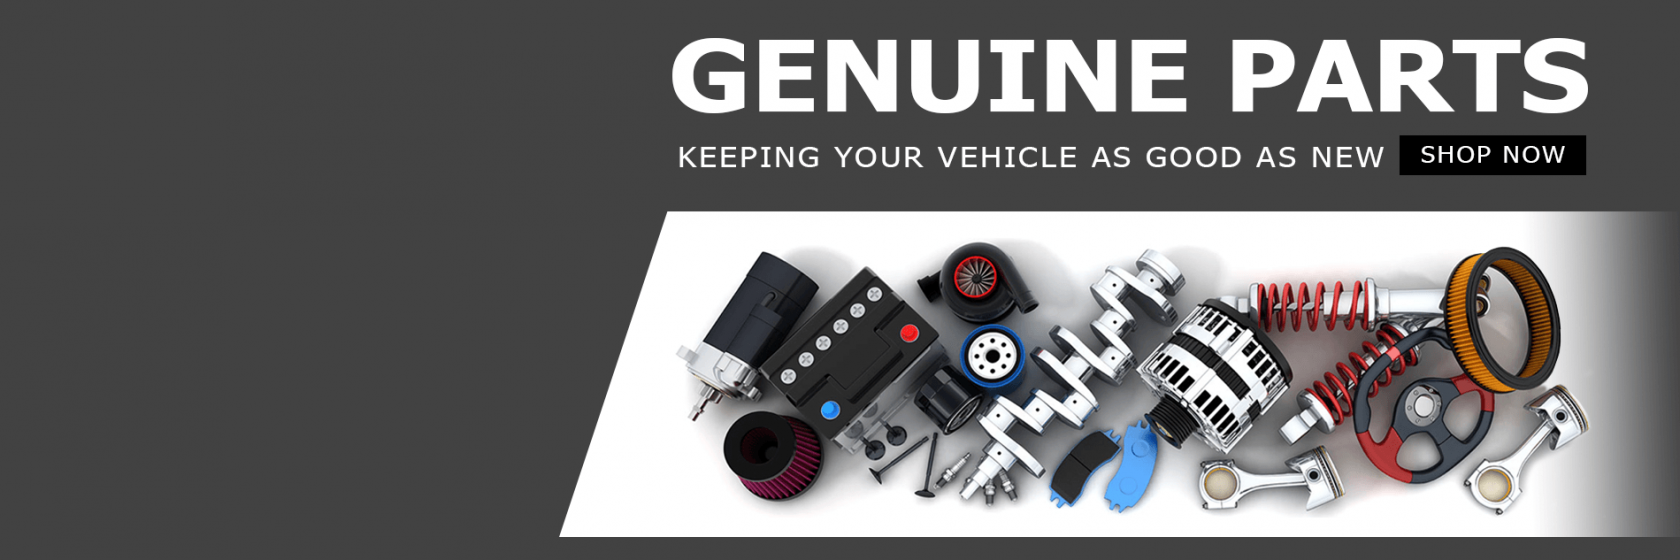 Genuine Parts at Desira Parts